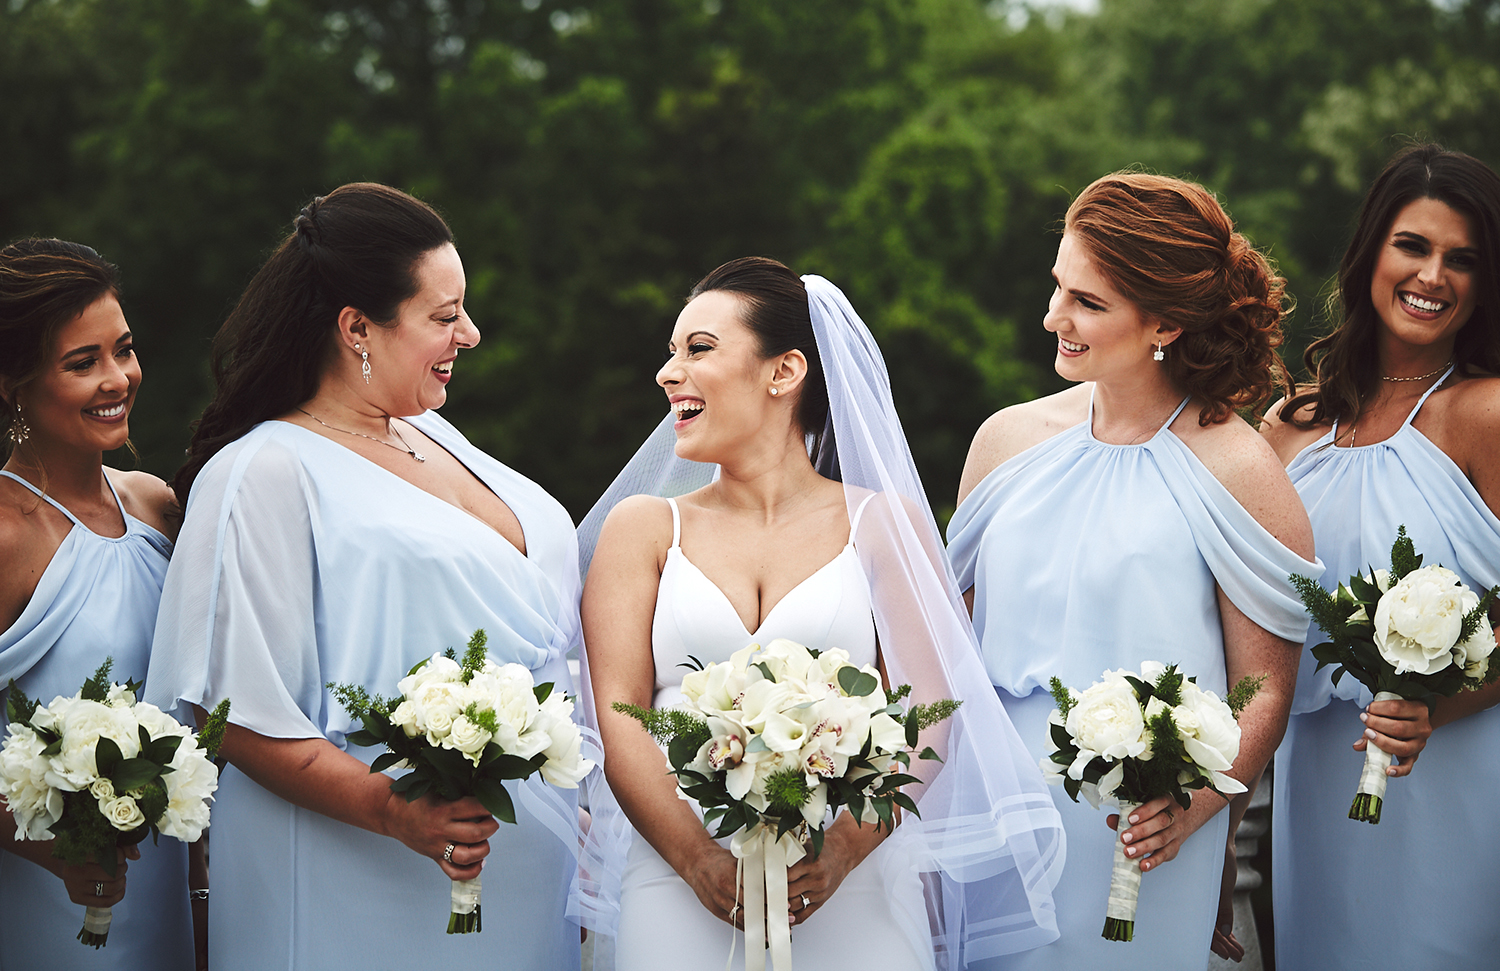 180519_PalaceatSomersetParkWeddingPhotography_NJWeddingPhotographer_By_BriJohnsonWeddings_0074.jpg